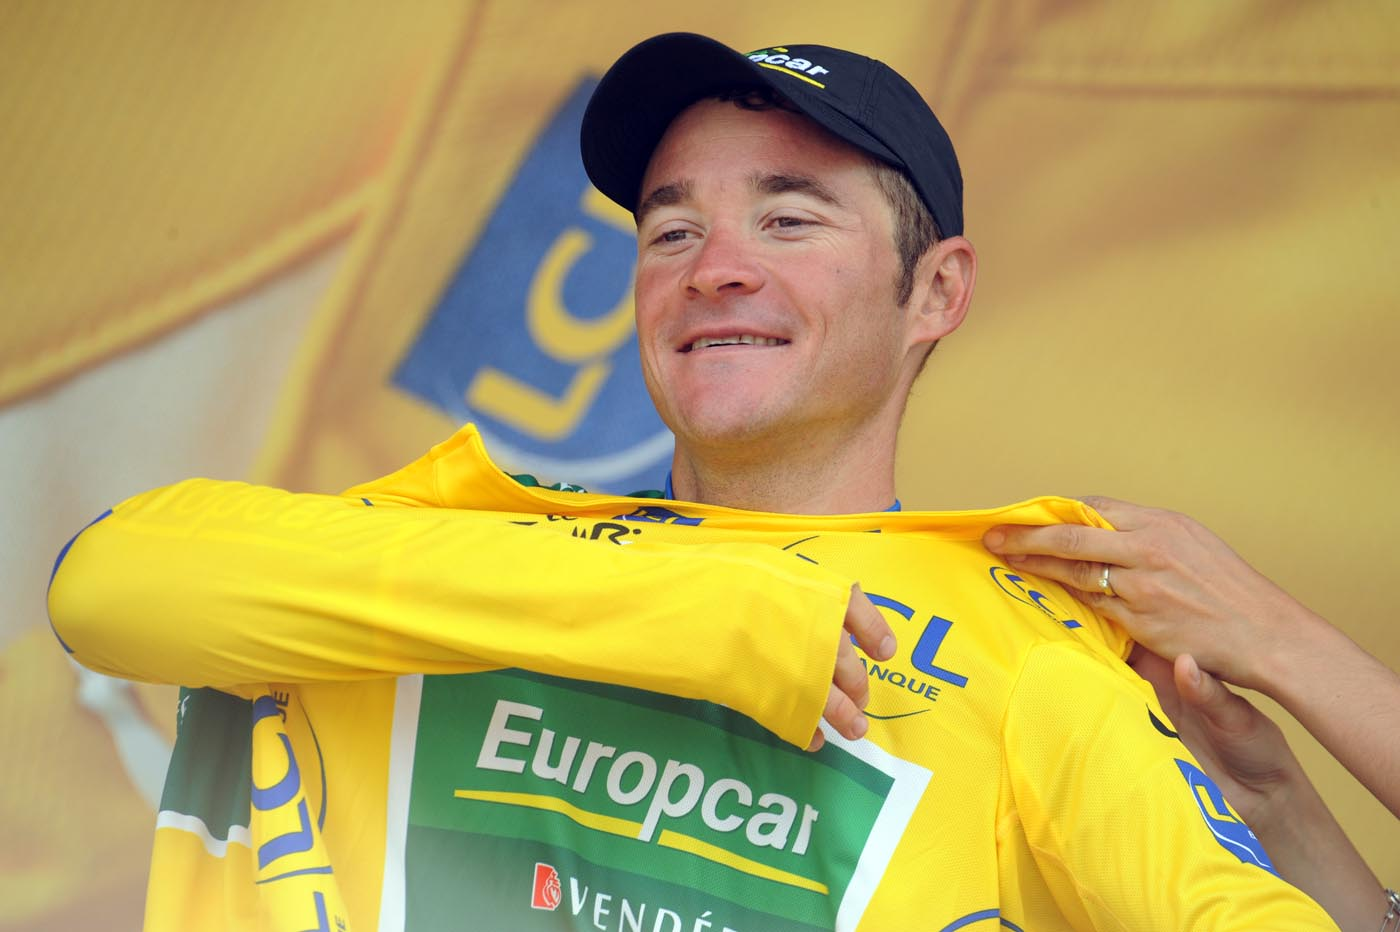 Thomas Voeckler on podium, Tour de France 2011, stage 13